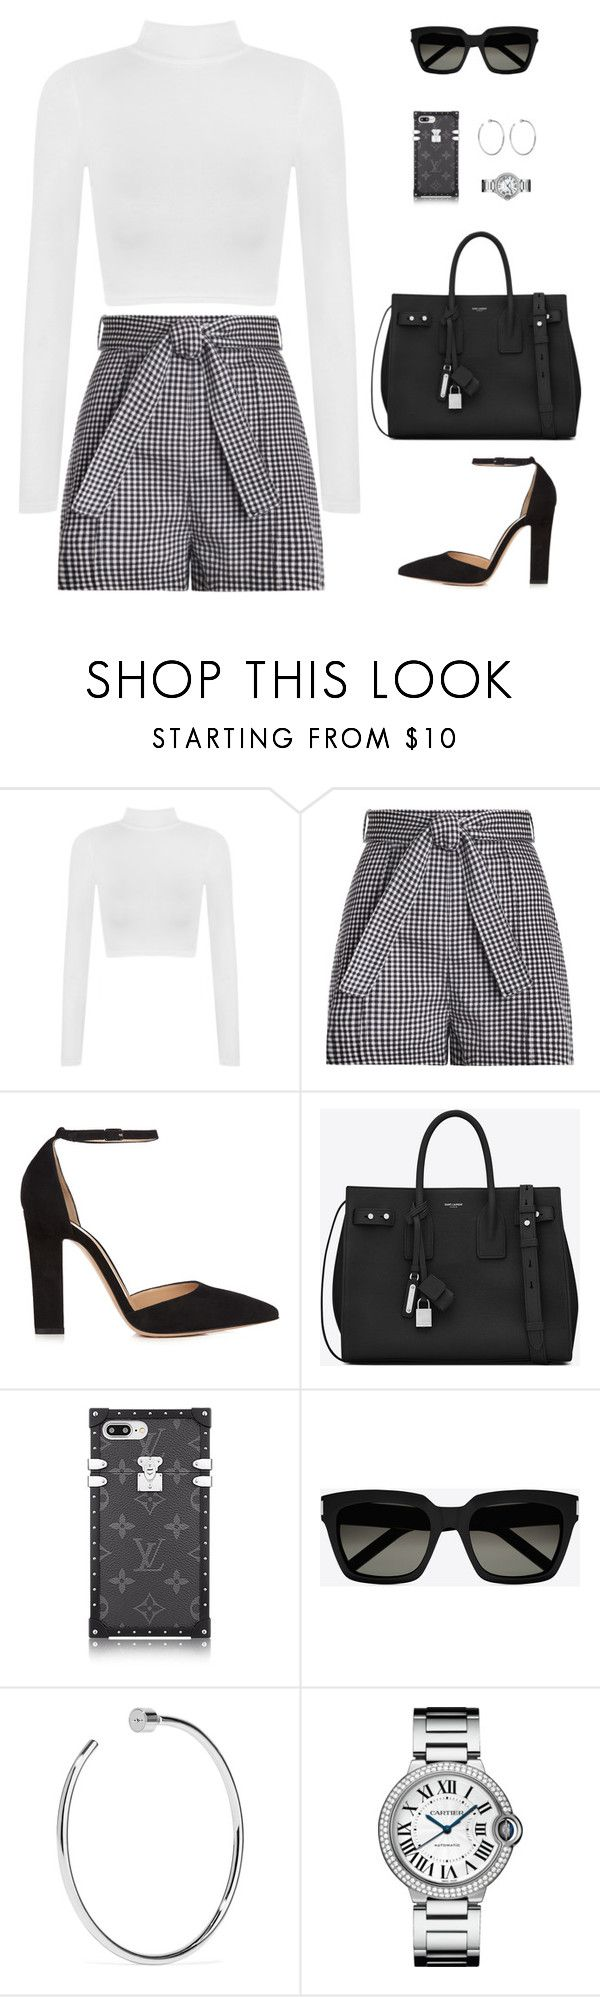 """Sin título #4743"" by mdmsb on Polyvore featuring moda, WearAll, Zimmermann, Gianvito Rossi, Yves Saint Laurent y Jennifer Fisher"